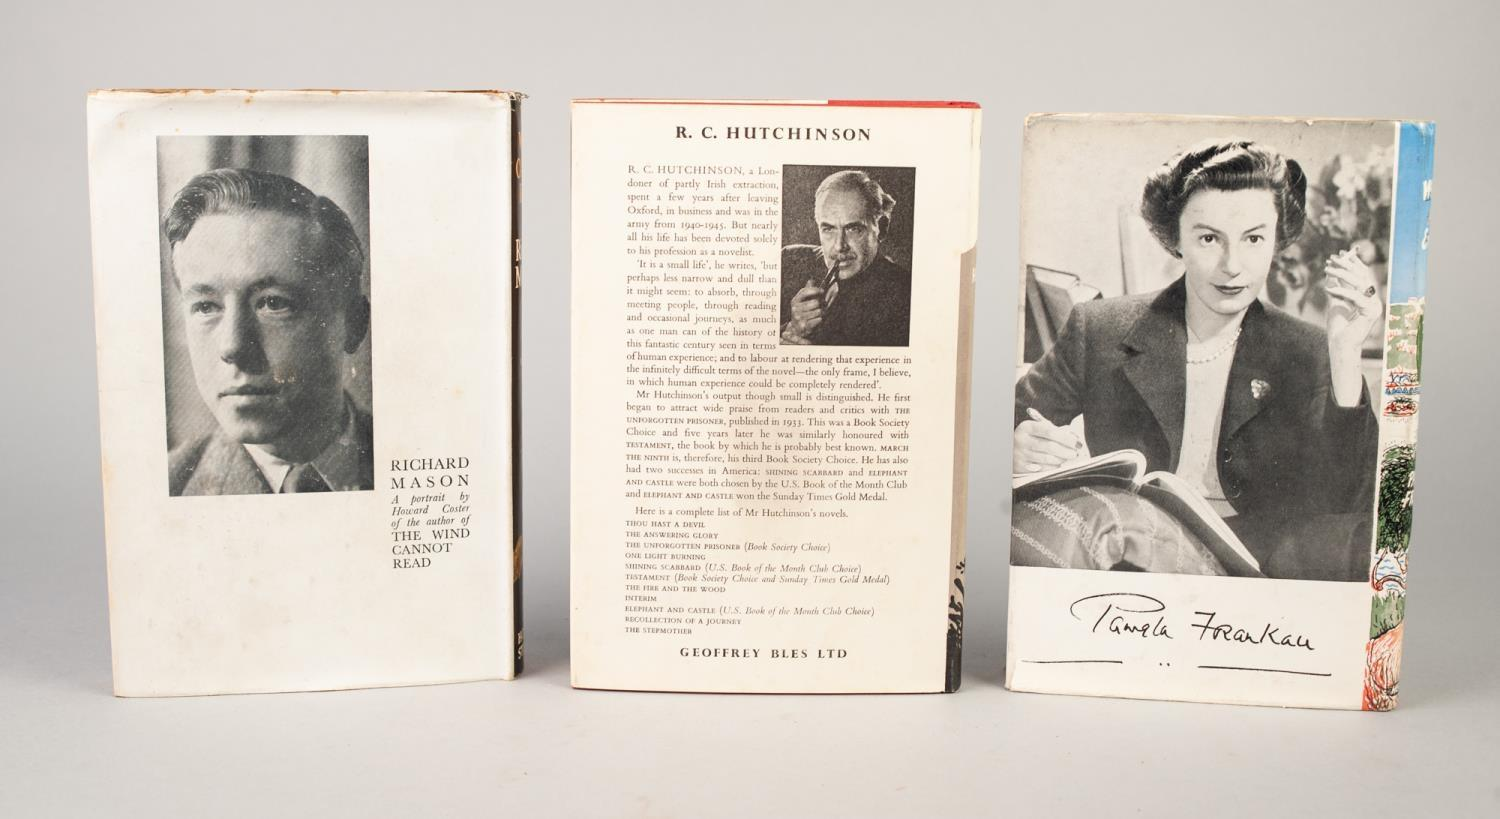 SIGNED TITLES: RICHARD MASON, The Wind Cannot Read, 1947, with dust jacket; E C LARGE, Sugar in - Image 4 of 18